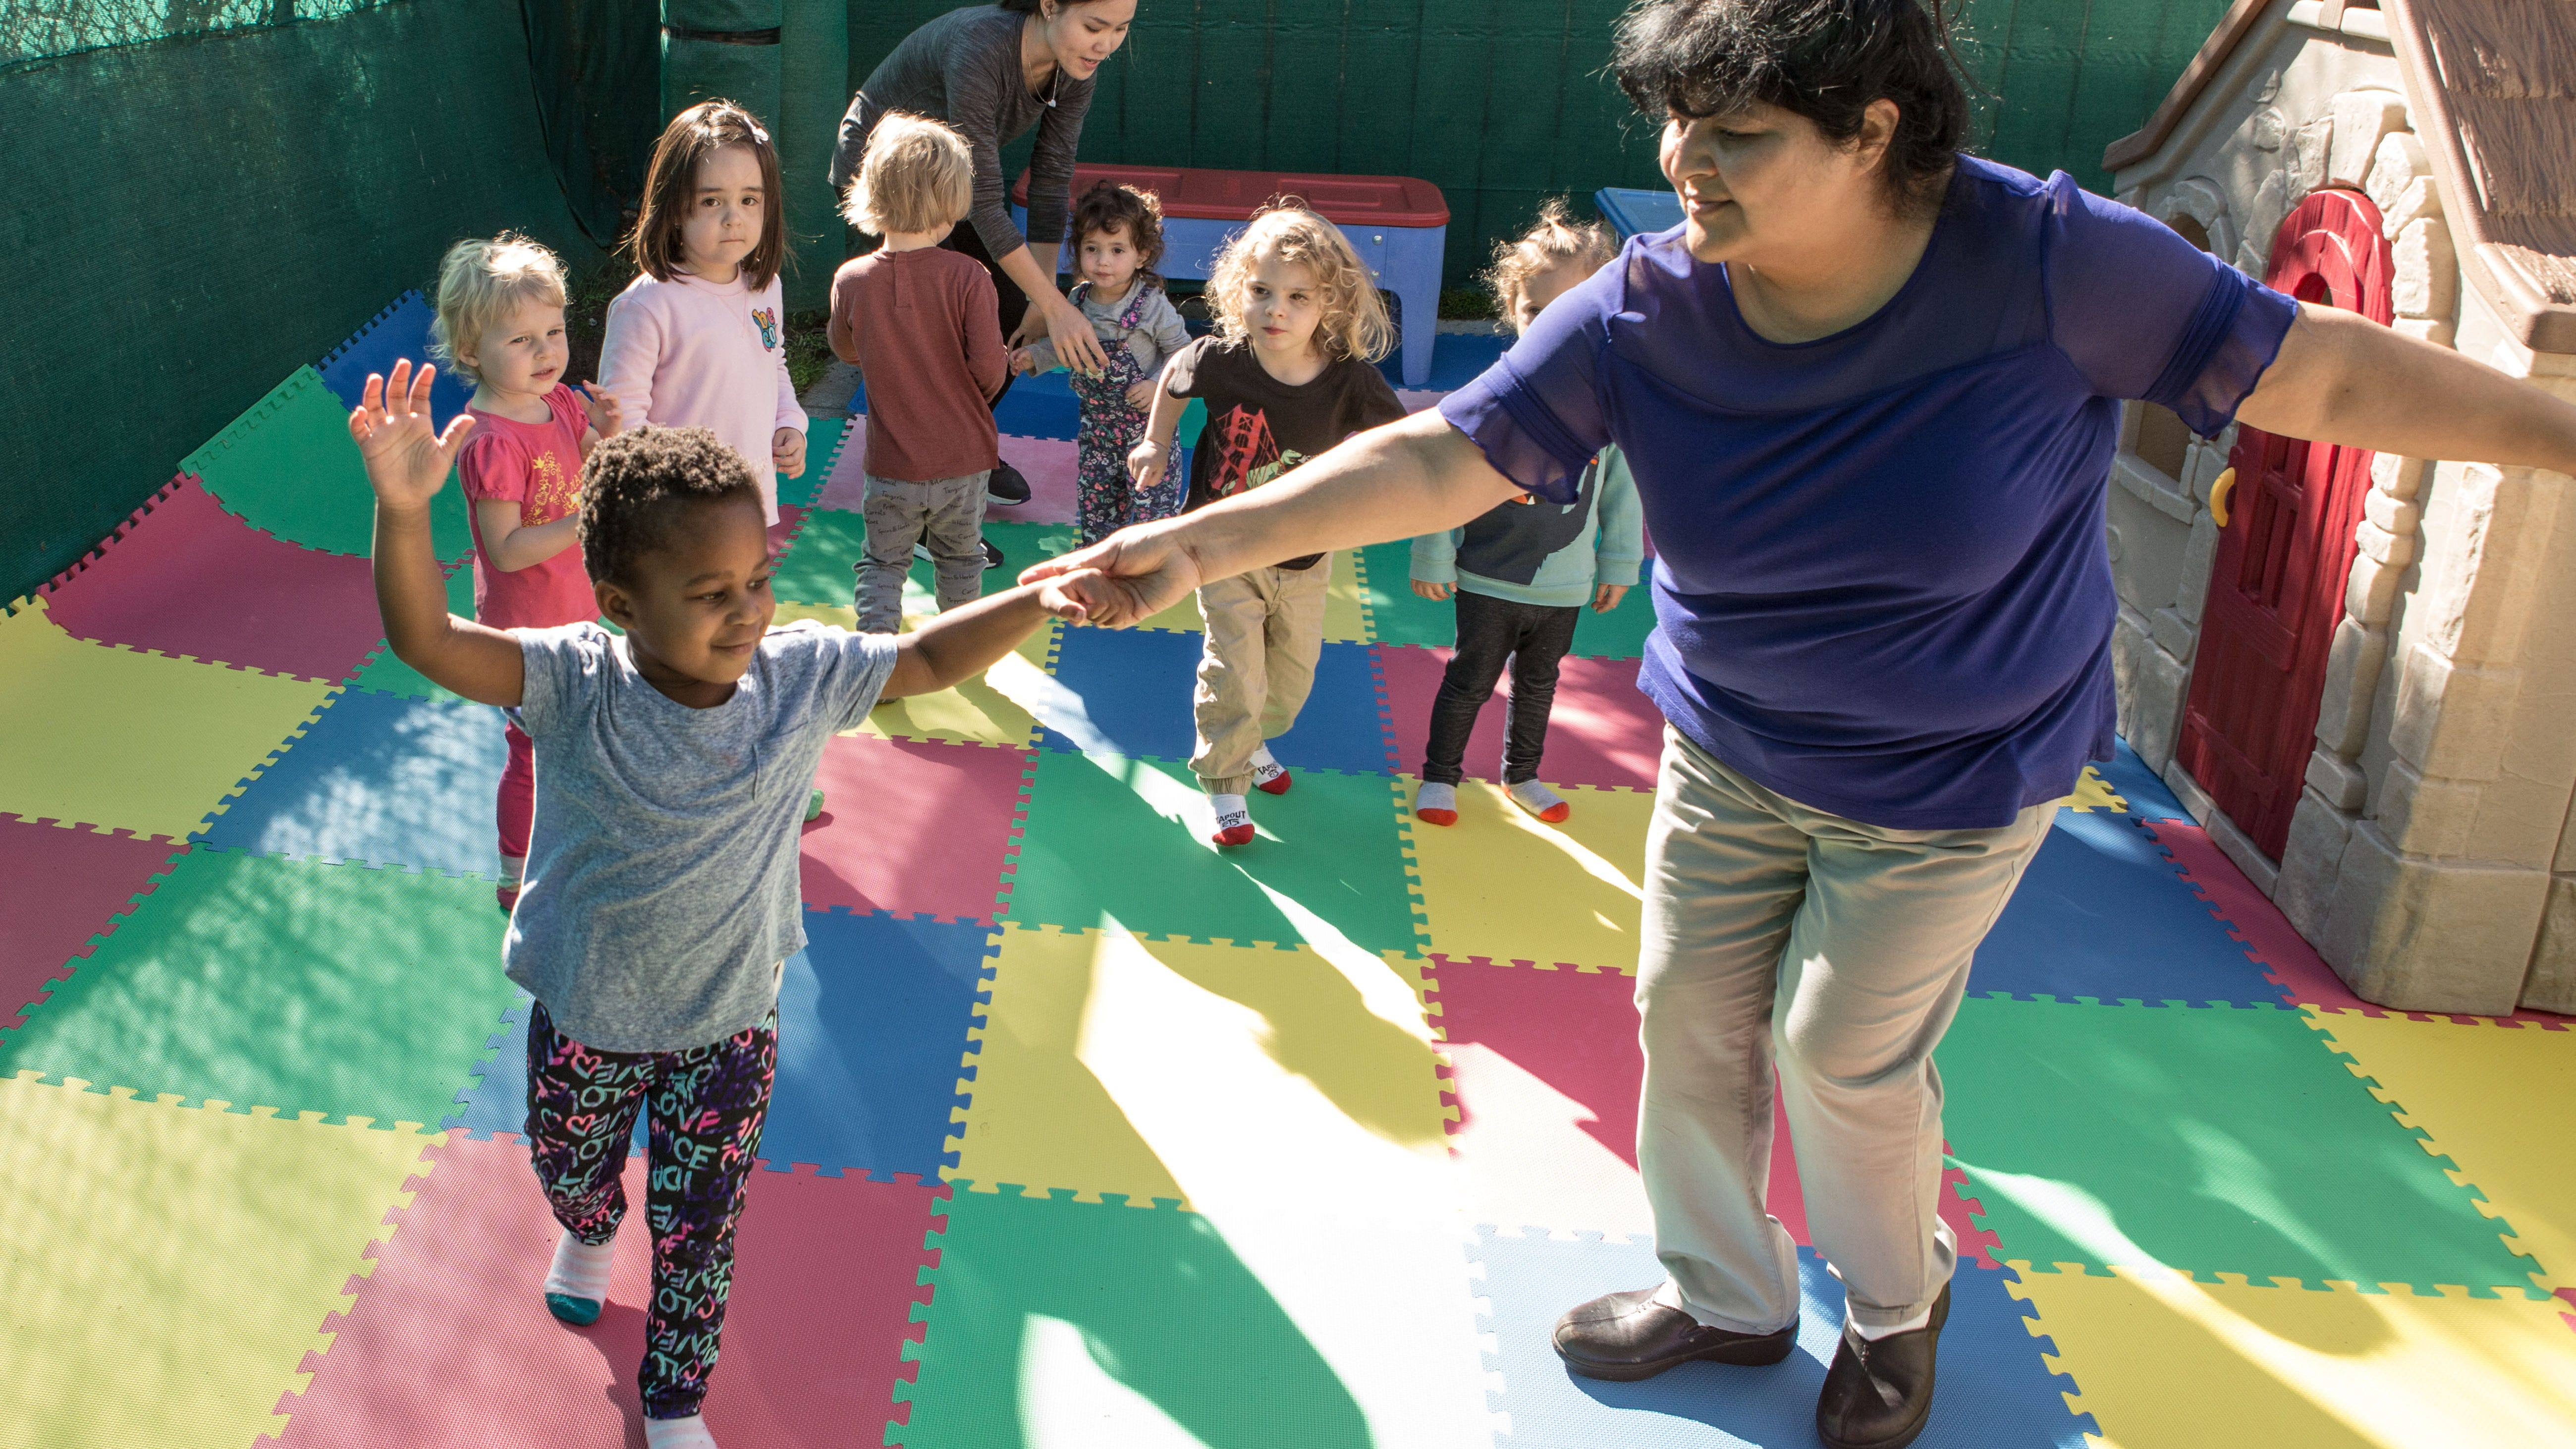 Zonia Torres, childcare provider and educator dances with preschoolers at Shining Stars Family Child Care in San Francisco on Oct. 24, 2018. Shining Stars Family Child Care in San Francisco is part of an obesity prevention program that uses research-backed approaches (like serving lots of fruits and vegetables and getting kids active for 2 hours a day Ð in her case, with salsa and merengueÊdancing, as well as backyard play).